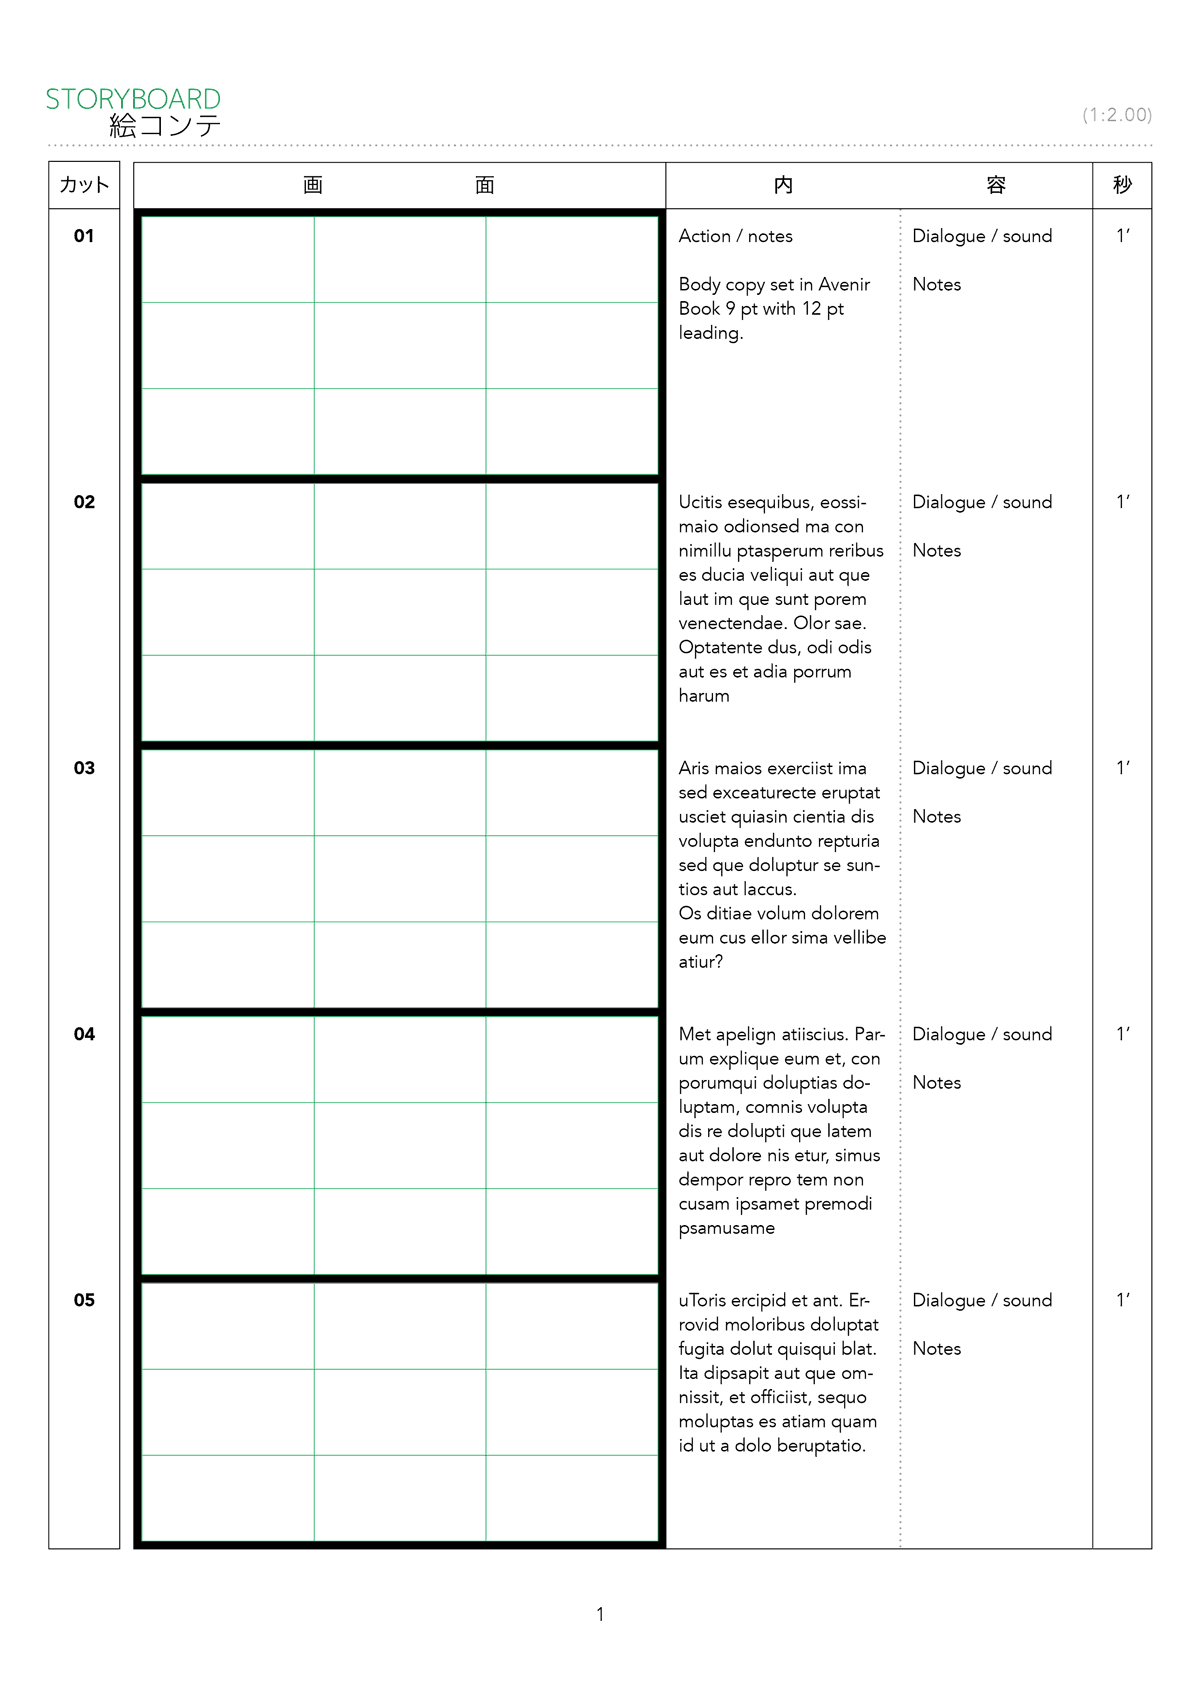 InDesign Japanese anime storyboard template 2:1 Avenir Book on A4 vertical